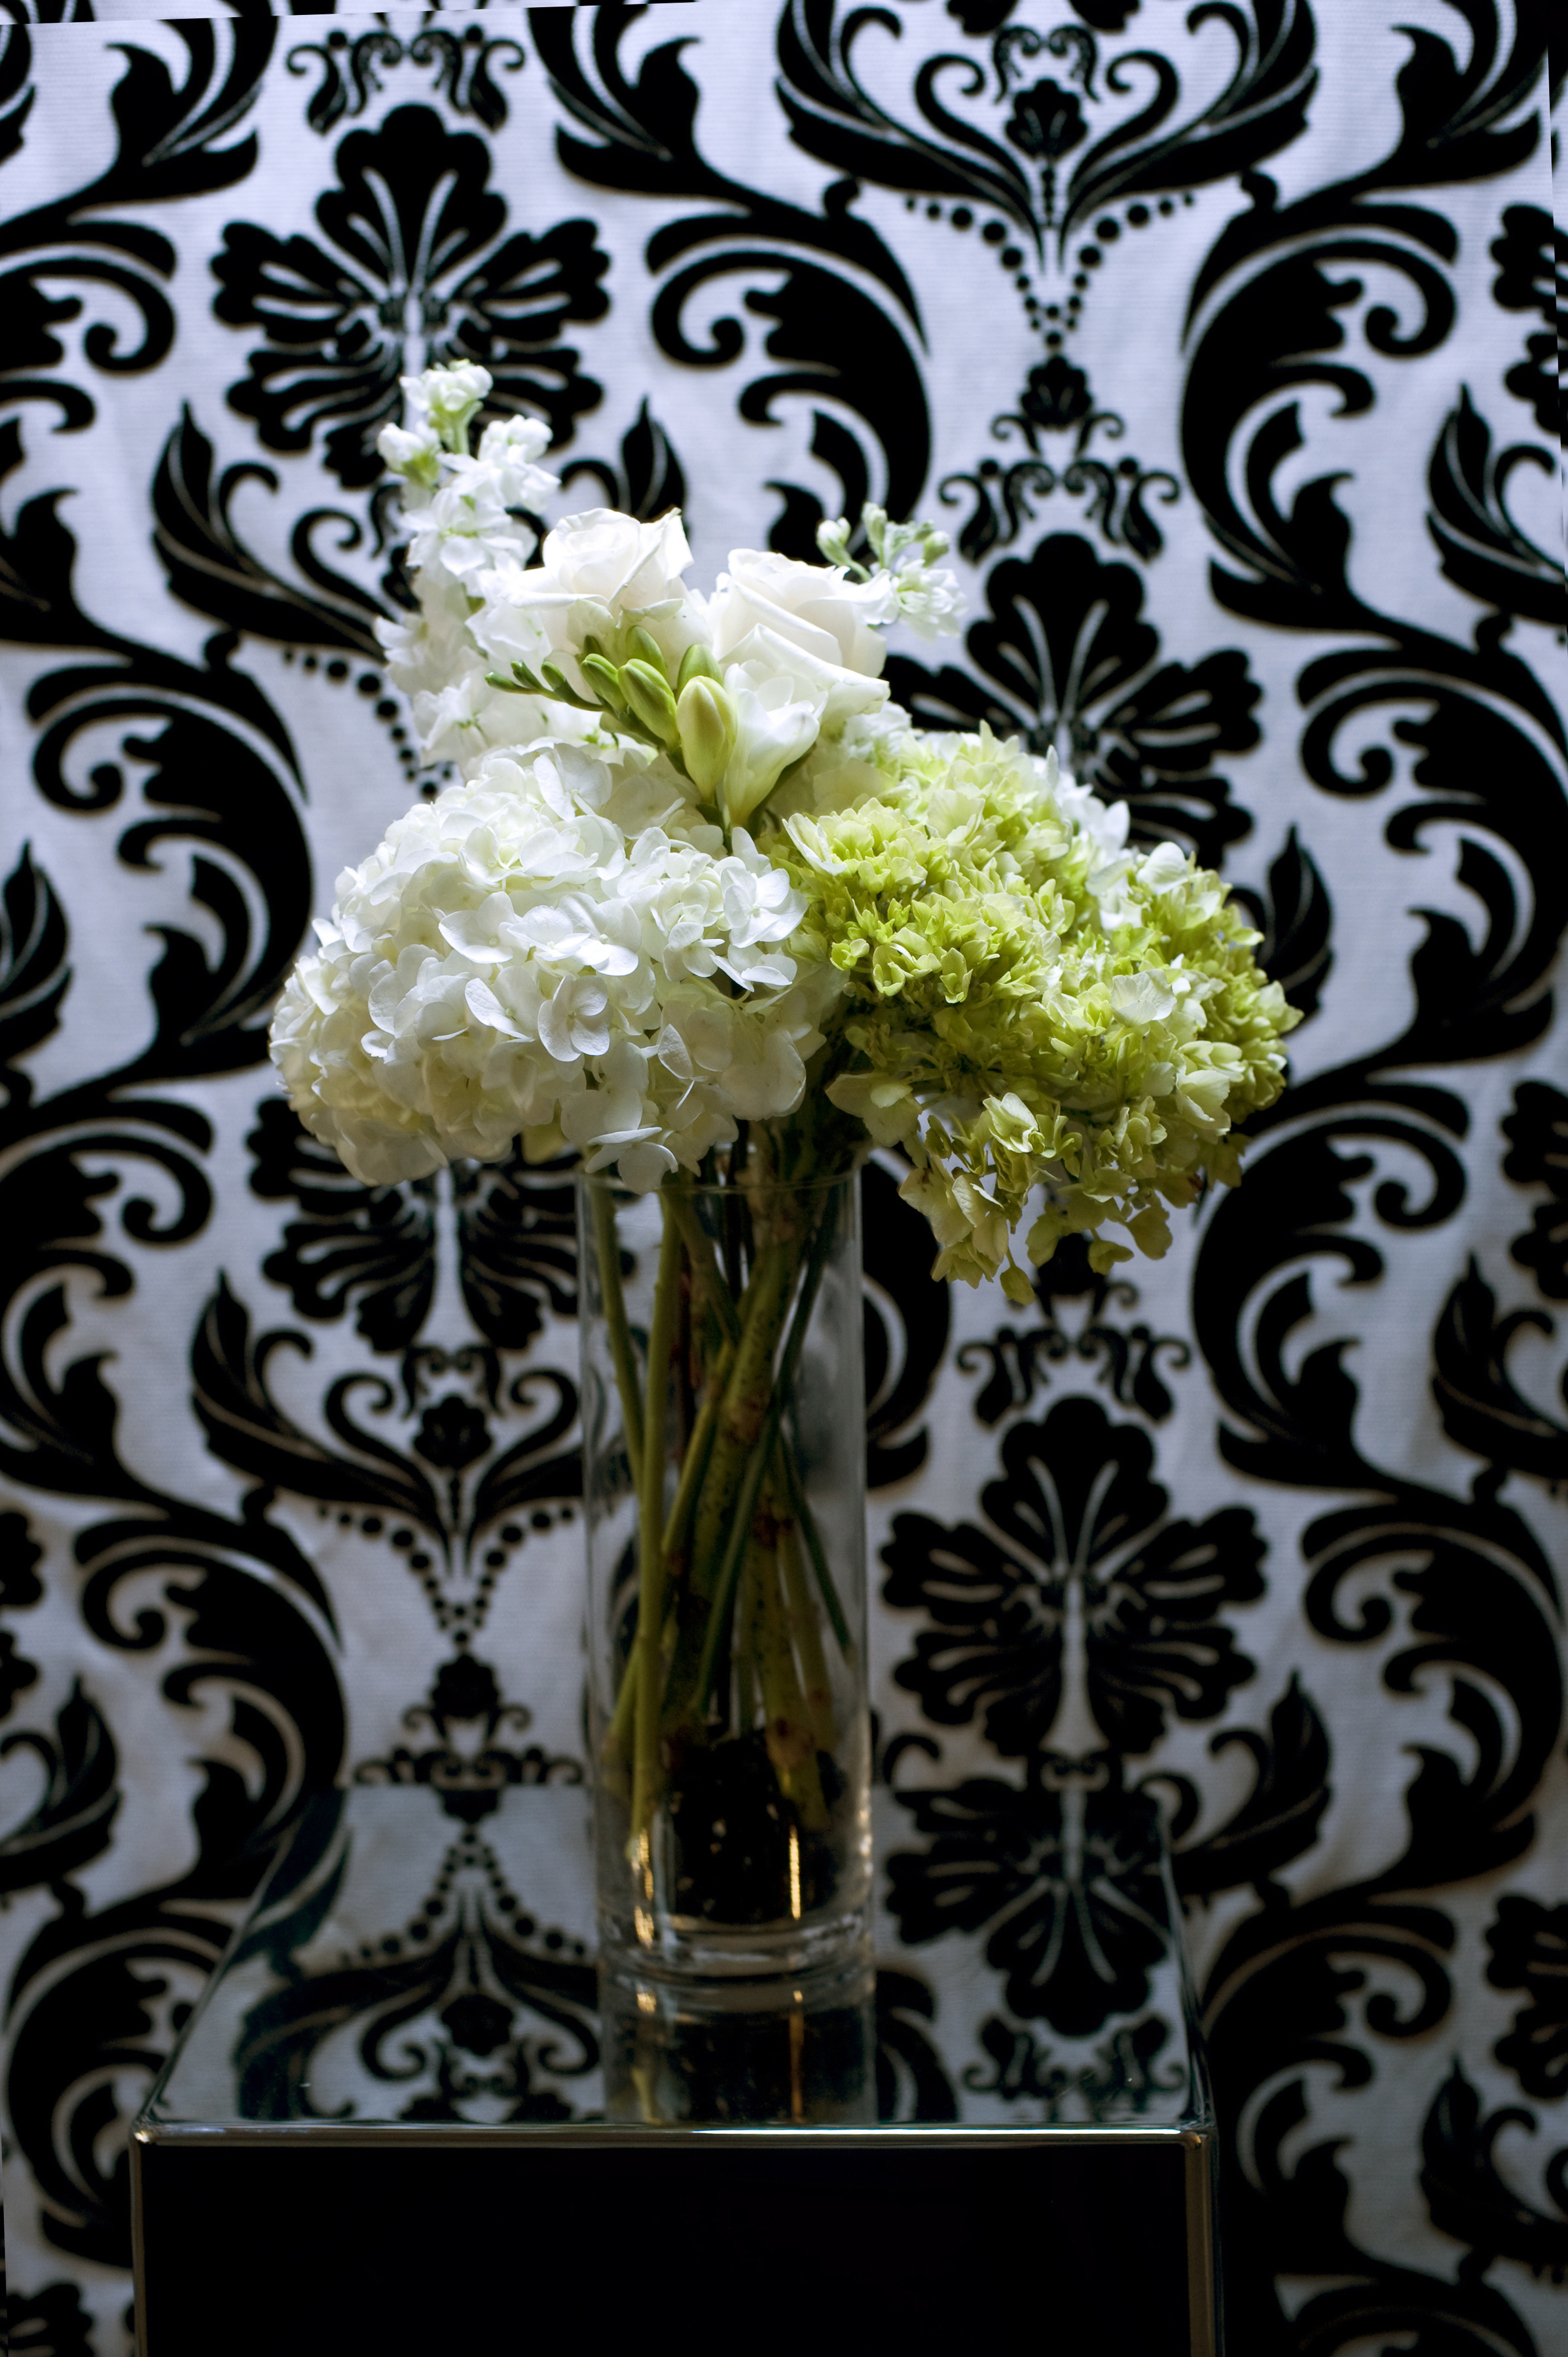 Ceremony, Inspiration, Reception, Flowers & Decor, white, green, black, Ceremony Flowers, Flowers, Board, llc, Virtuous events